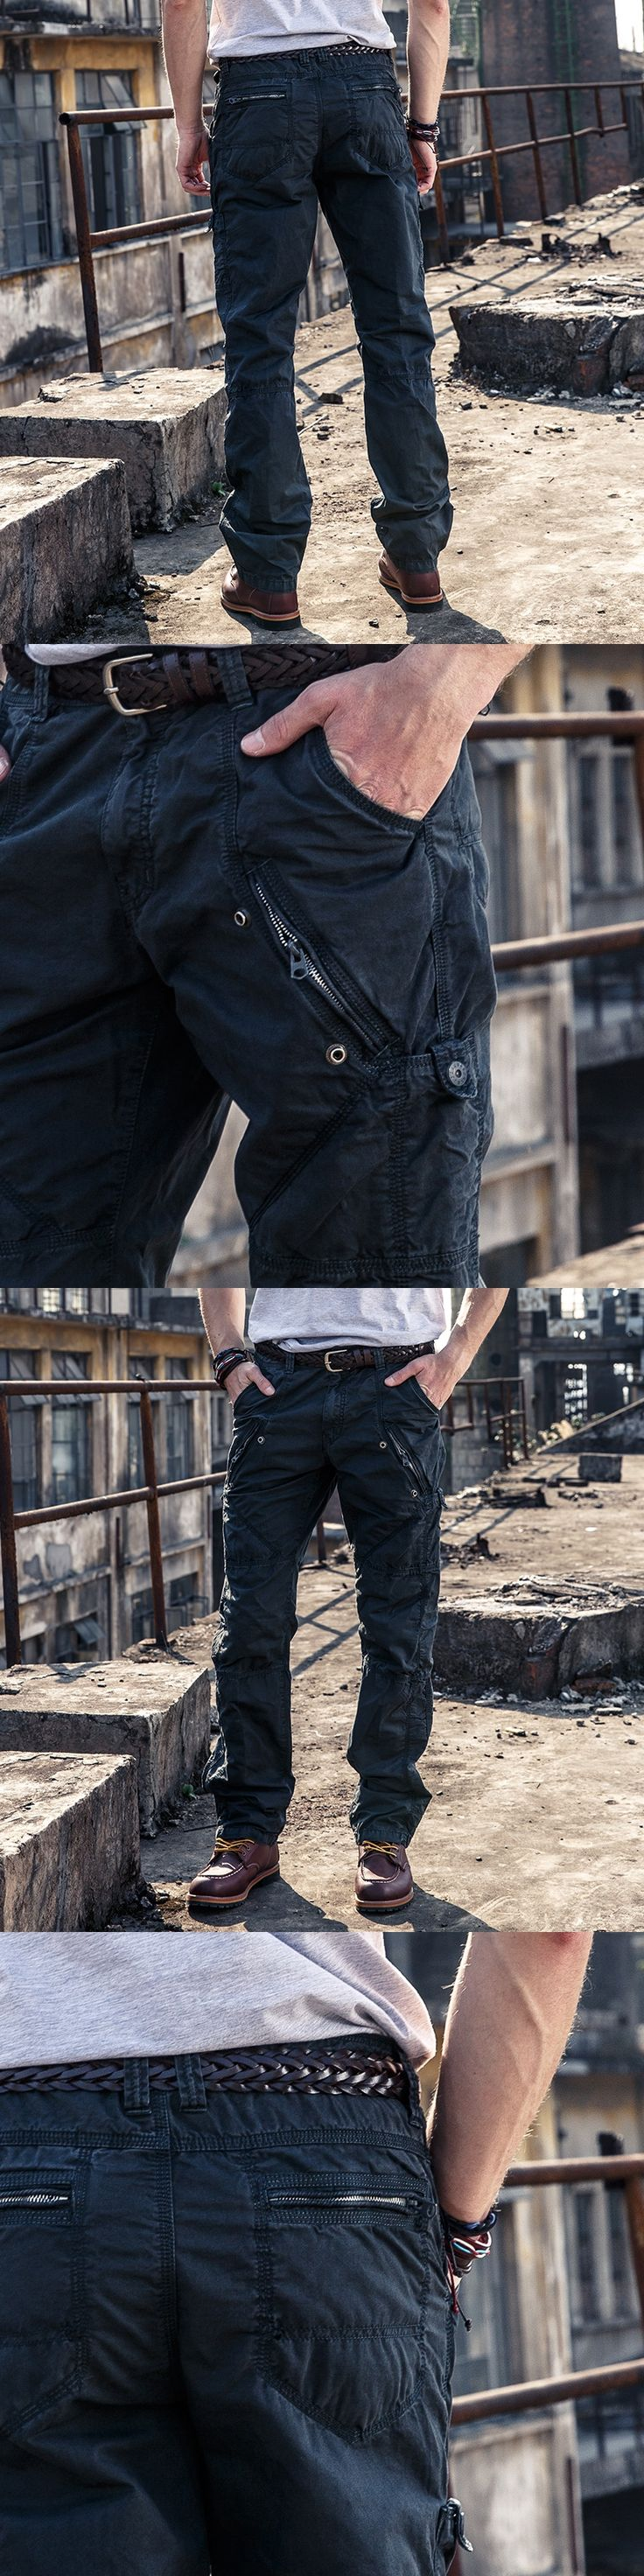 Cargo Pants military style Men Army Pocket Trousers Cotton Casual  Multi Pocket Militar Tactical Pants For Men 3258